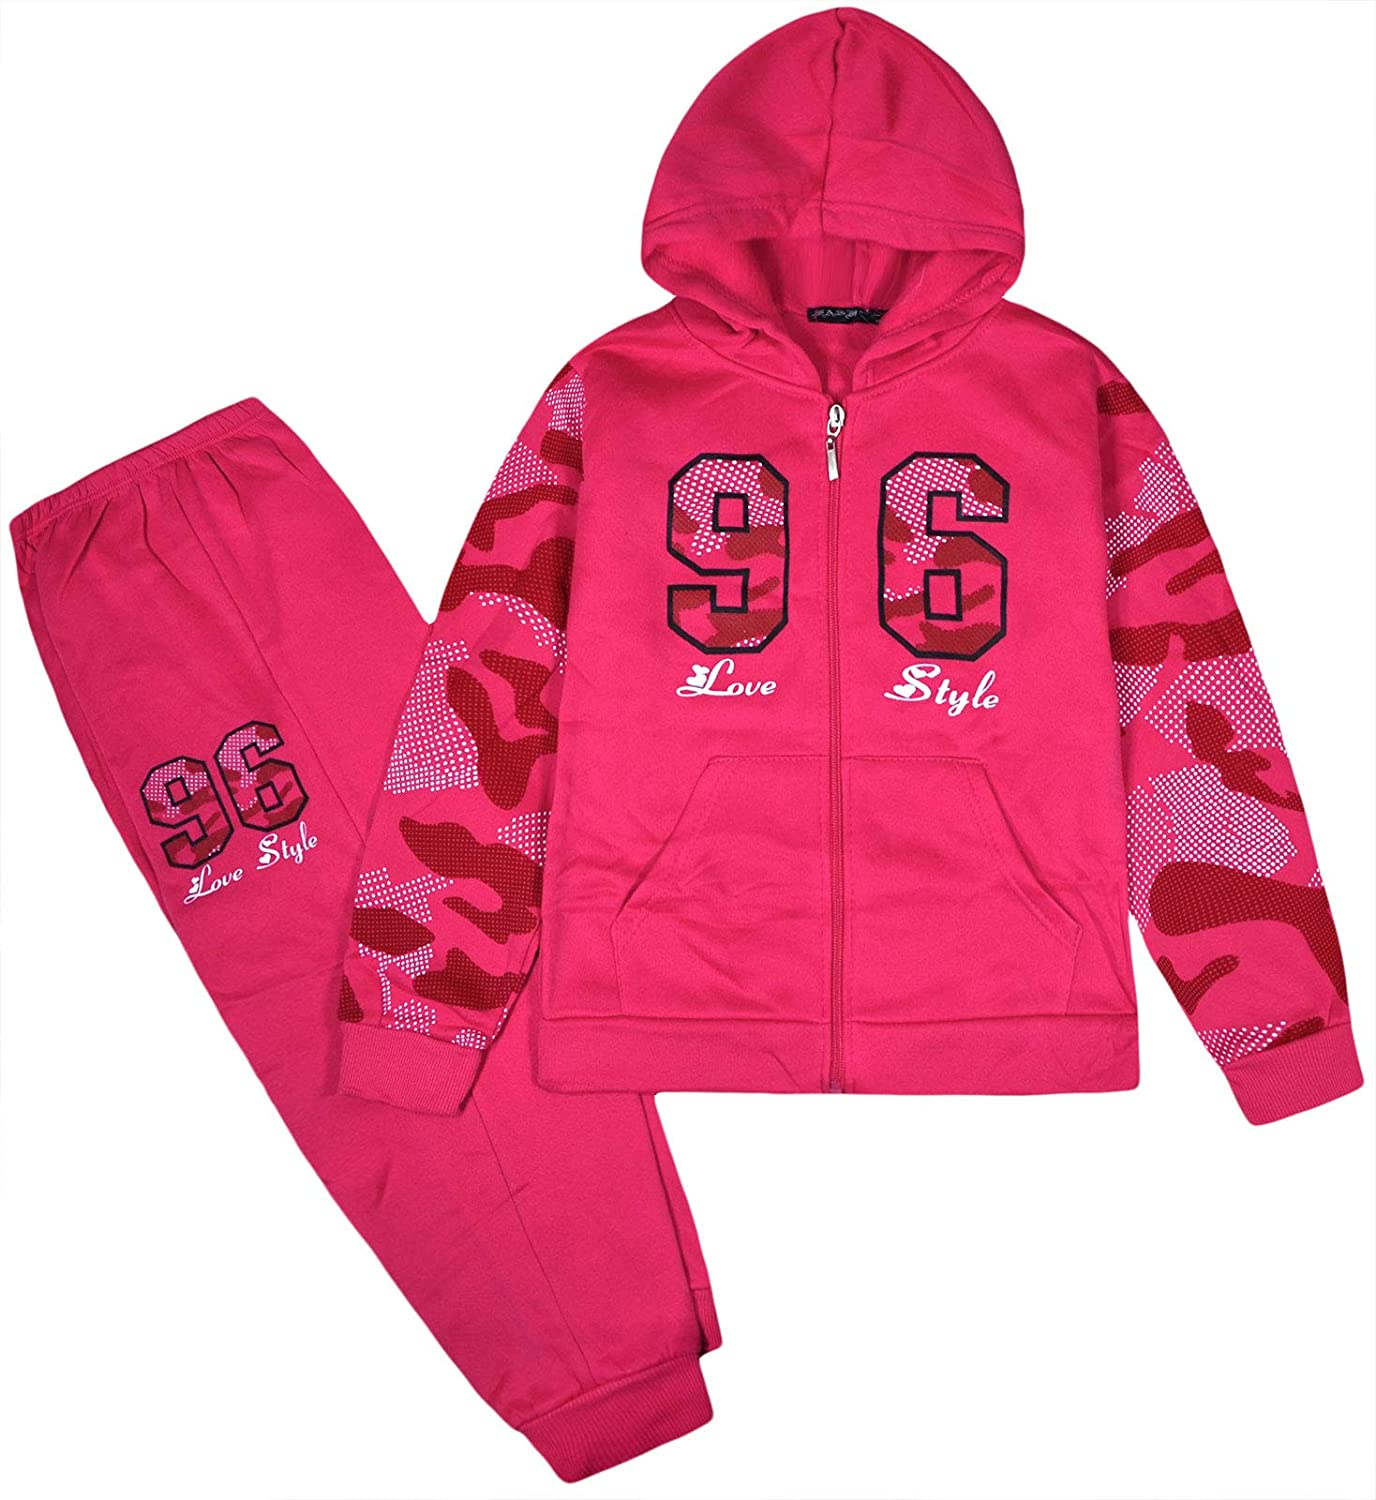 JollyRascals Girls Tracksuit Set Kids Hoodie Camo Sleeves and Jogging Bottom 2psc Suit New Ages 2 3 4 5 6 7 8 9 10 Years